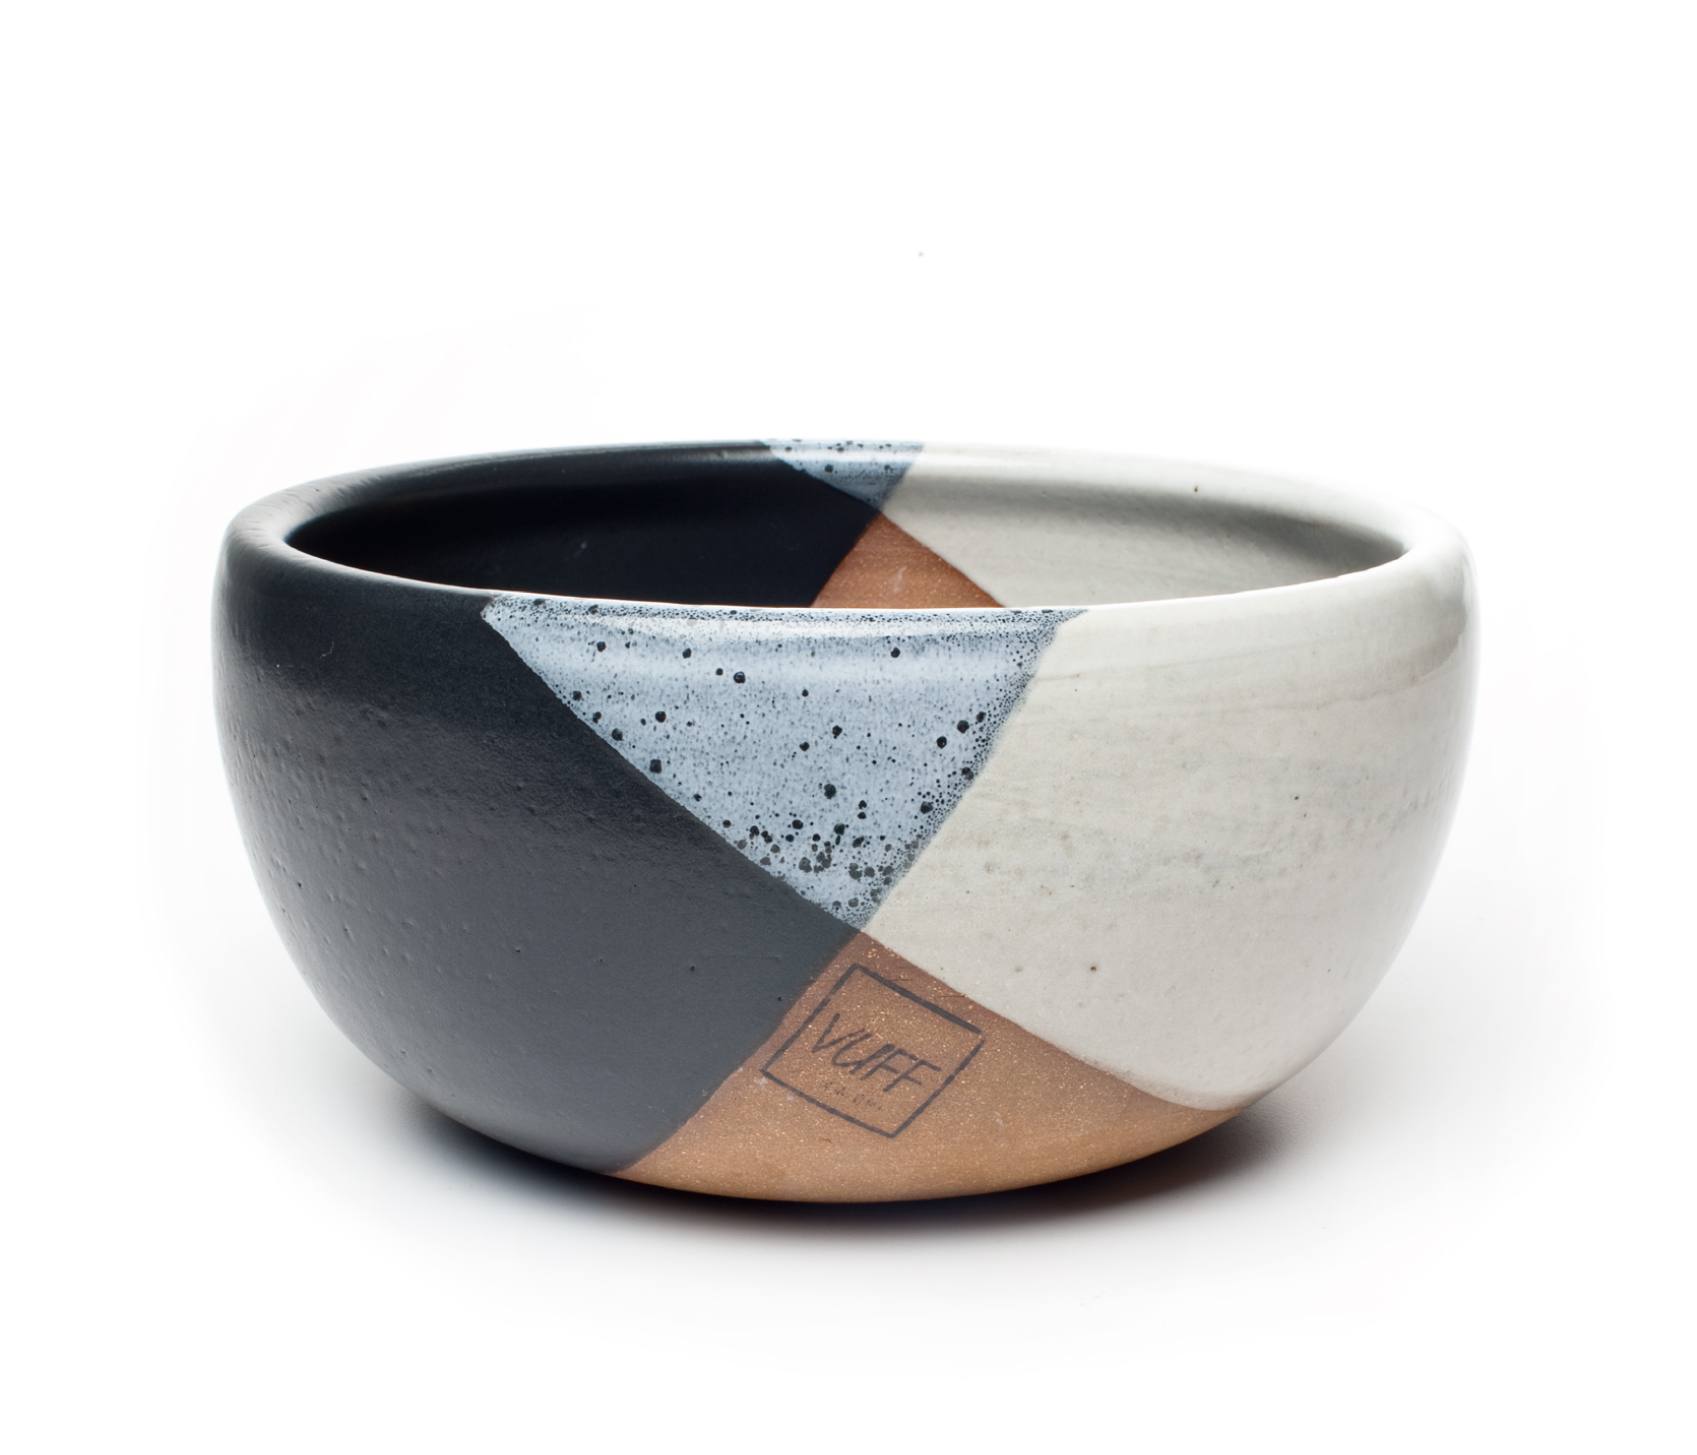 8 Bowl  dog bowl - limited quantities - ORDER ONE!